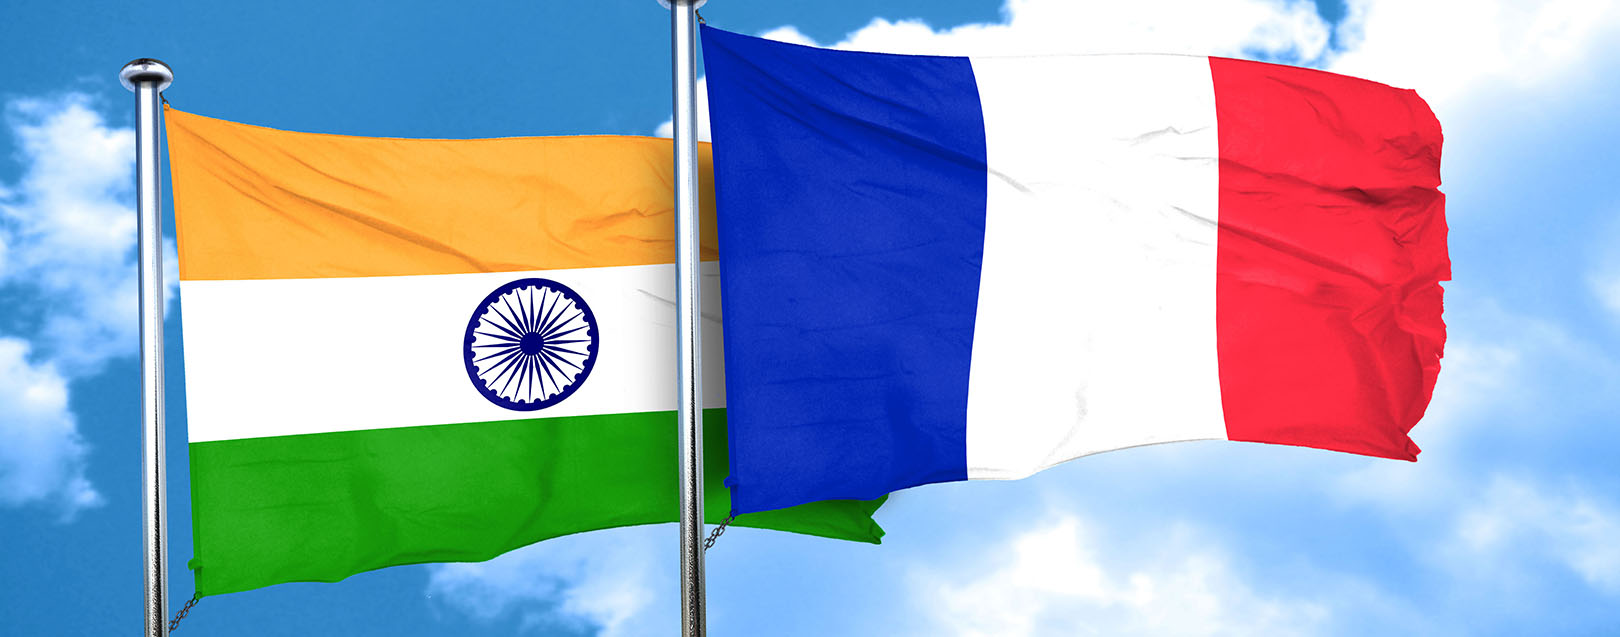 French cos to pump in euro 8 bn in India